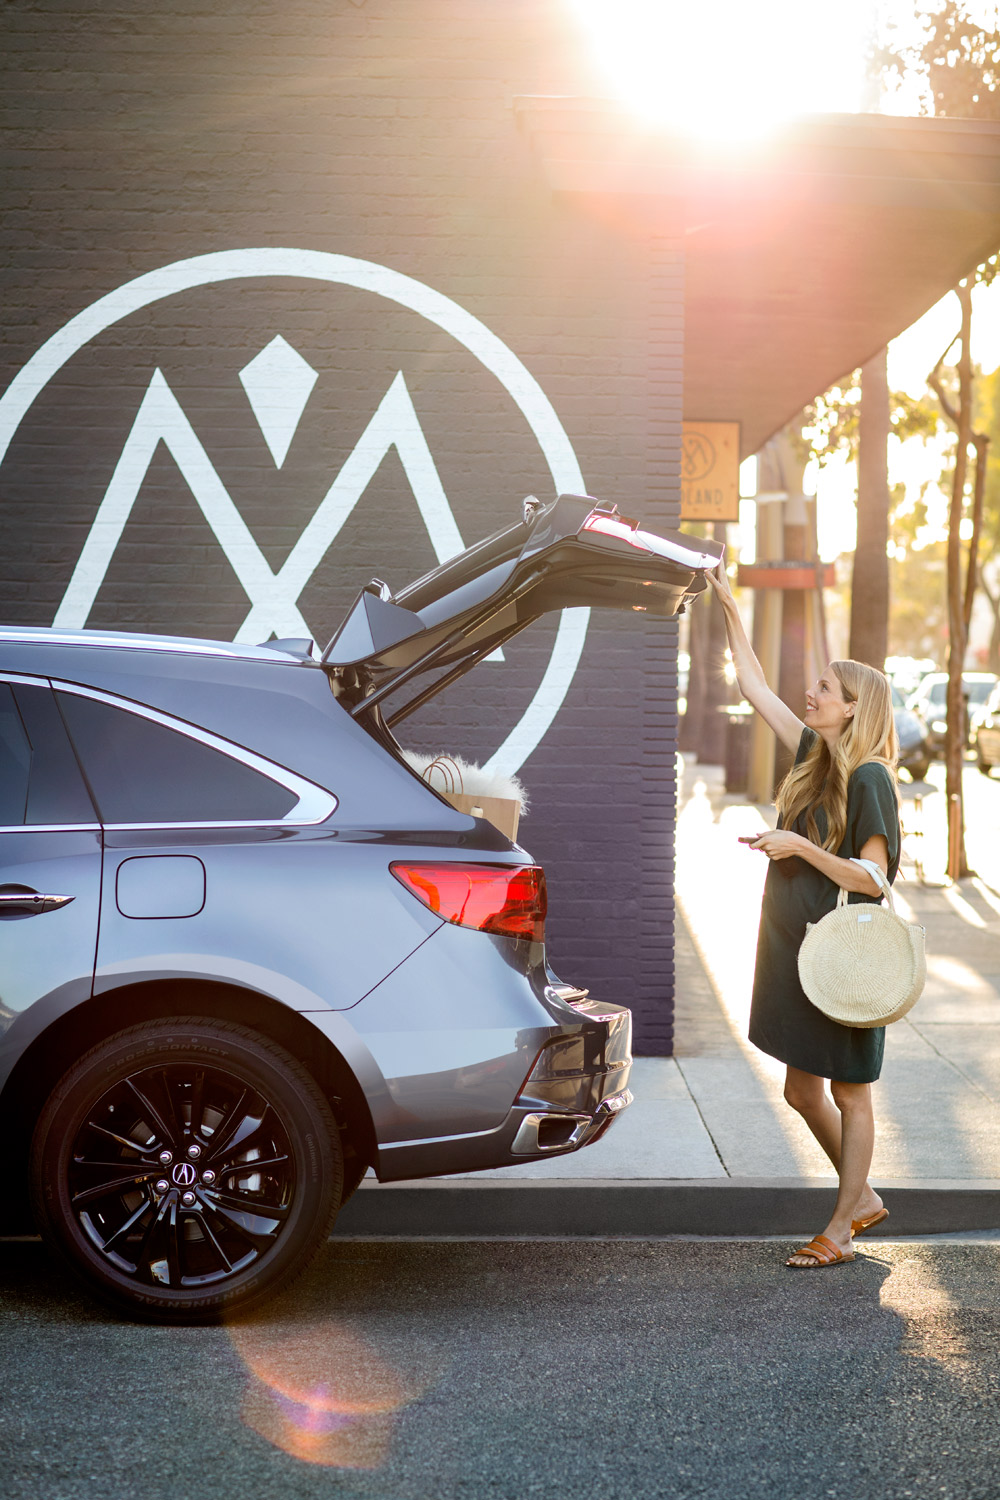 lou-mora-automotive-lifestyle-acura-mdx-002.jpg